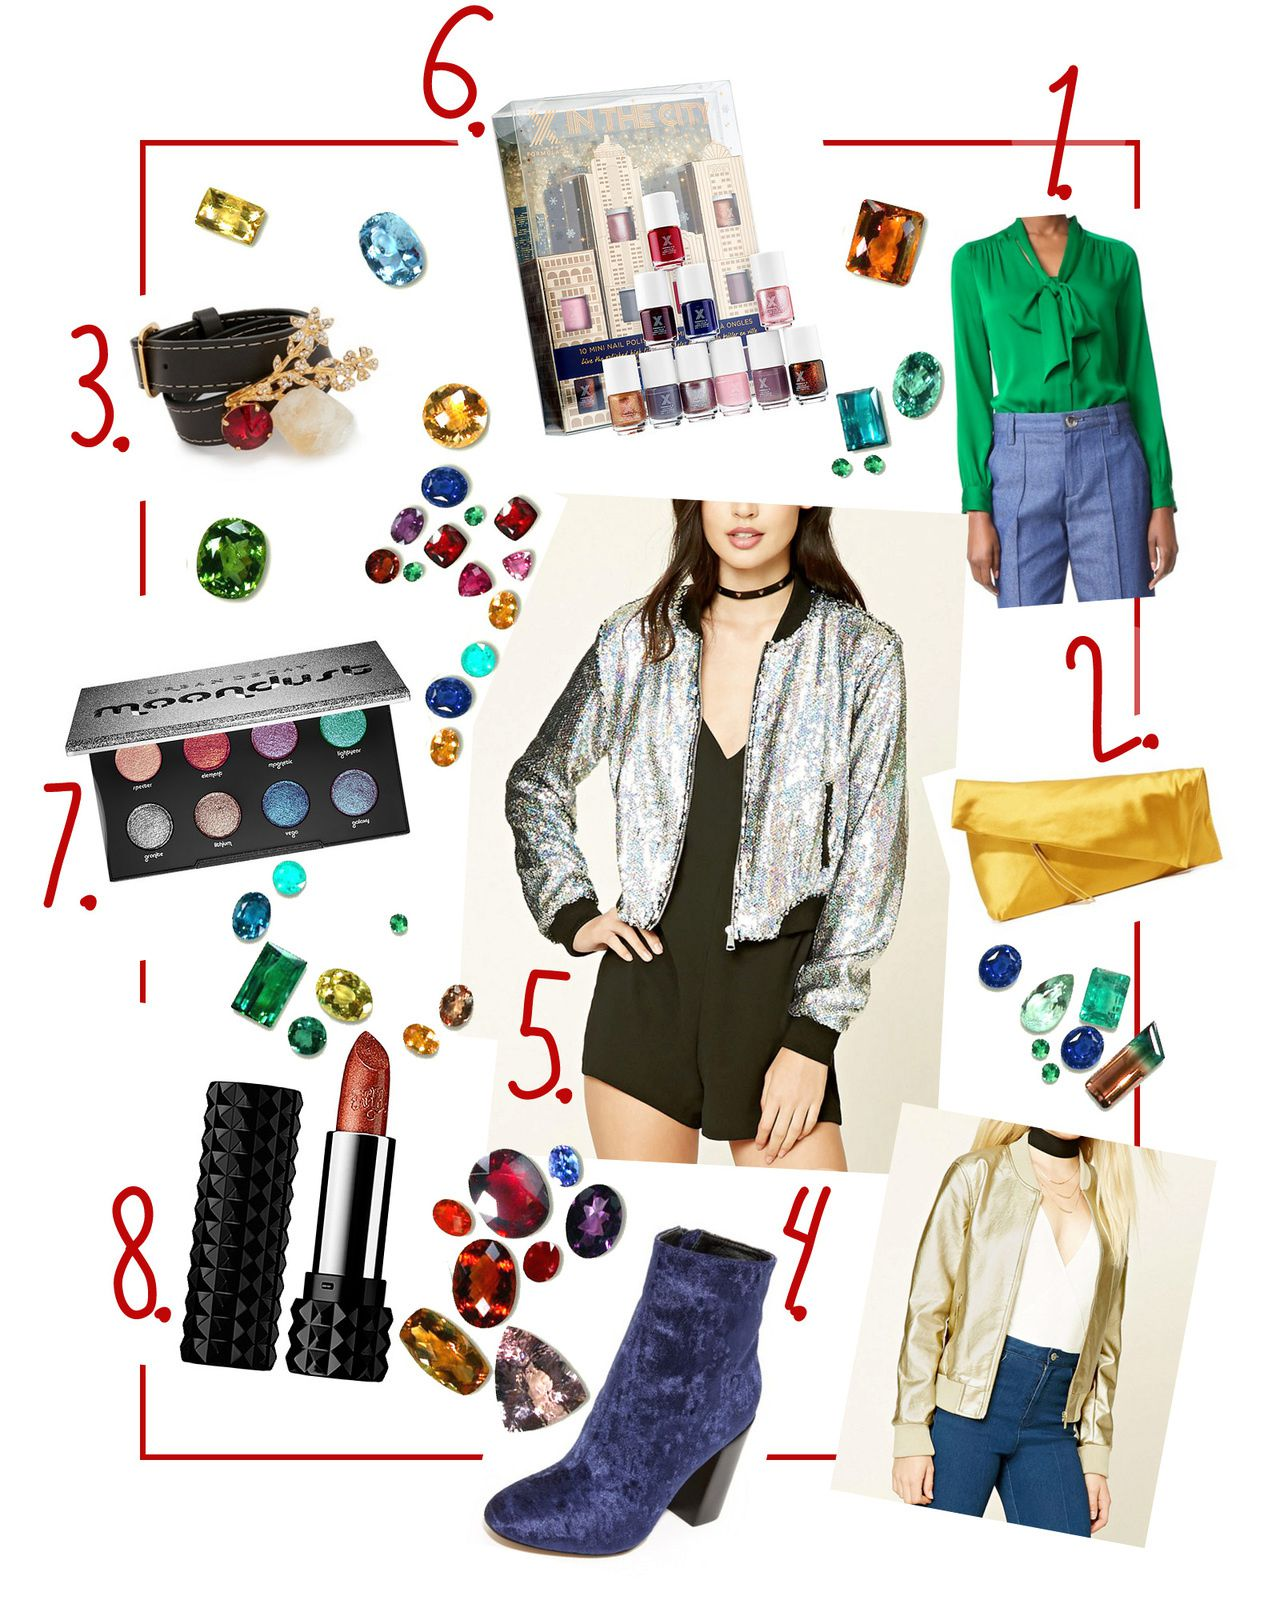 How to Dress Up in Jewel Tones this Holiday Season